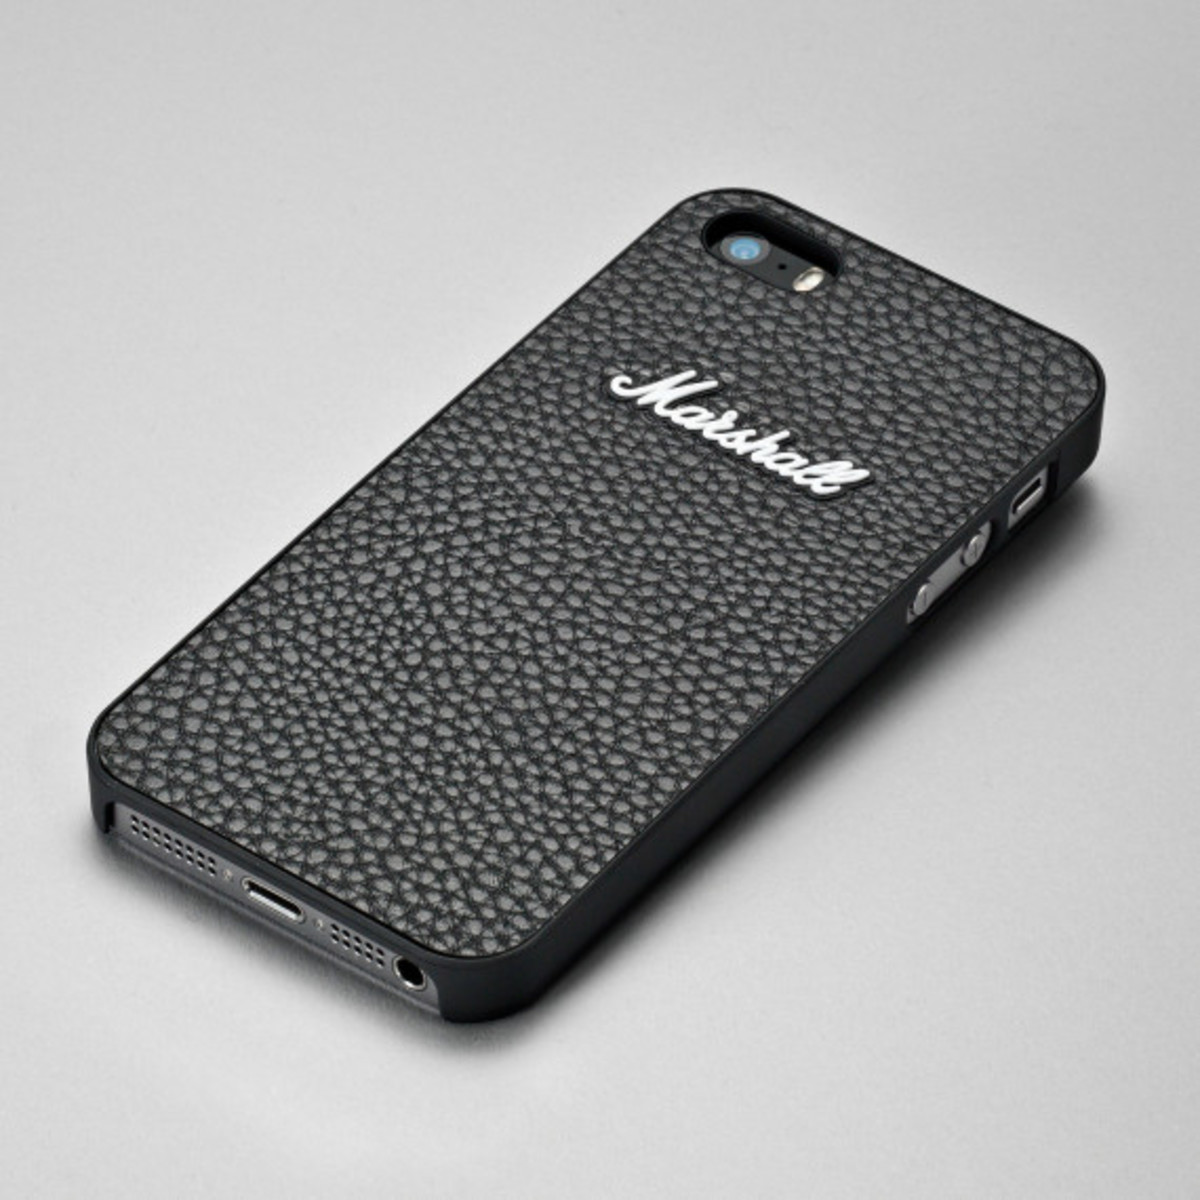 Marshall Phone Case - For Apple iPhone 5/5S & Samsung Galaxy S4 - 5